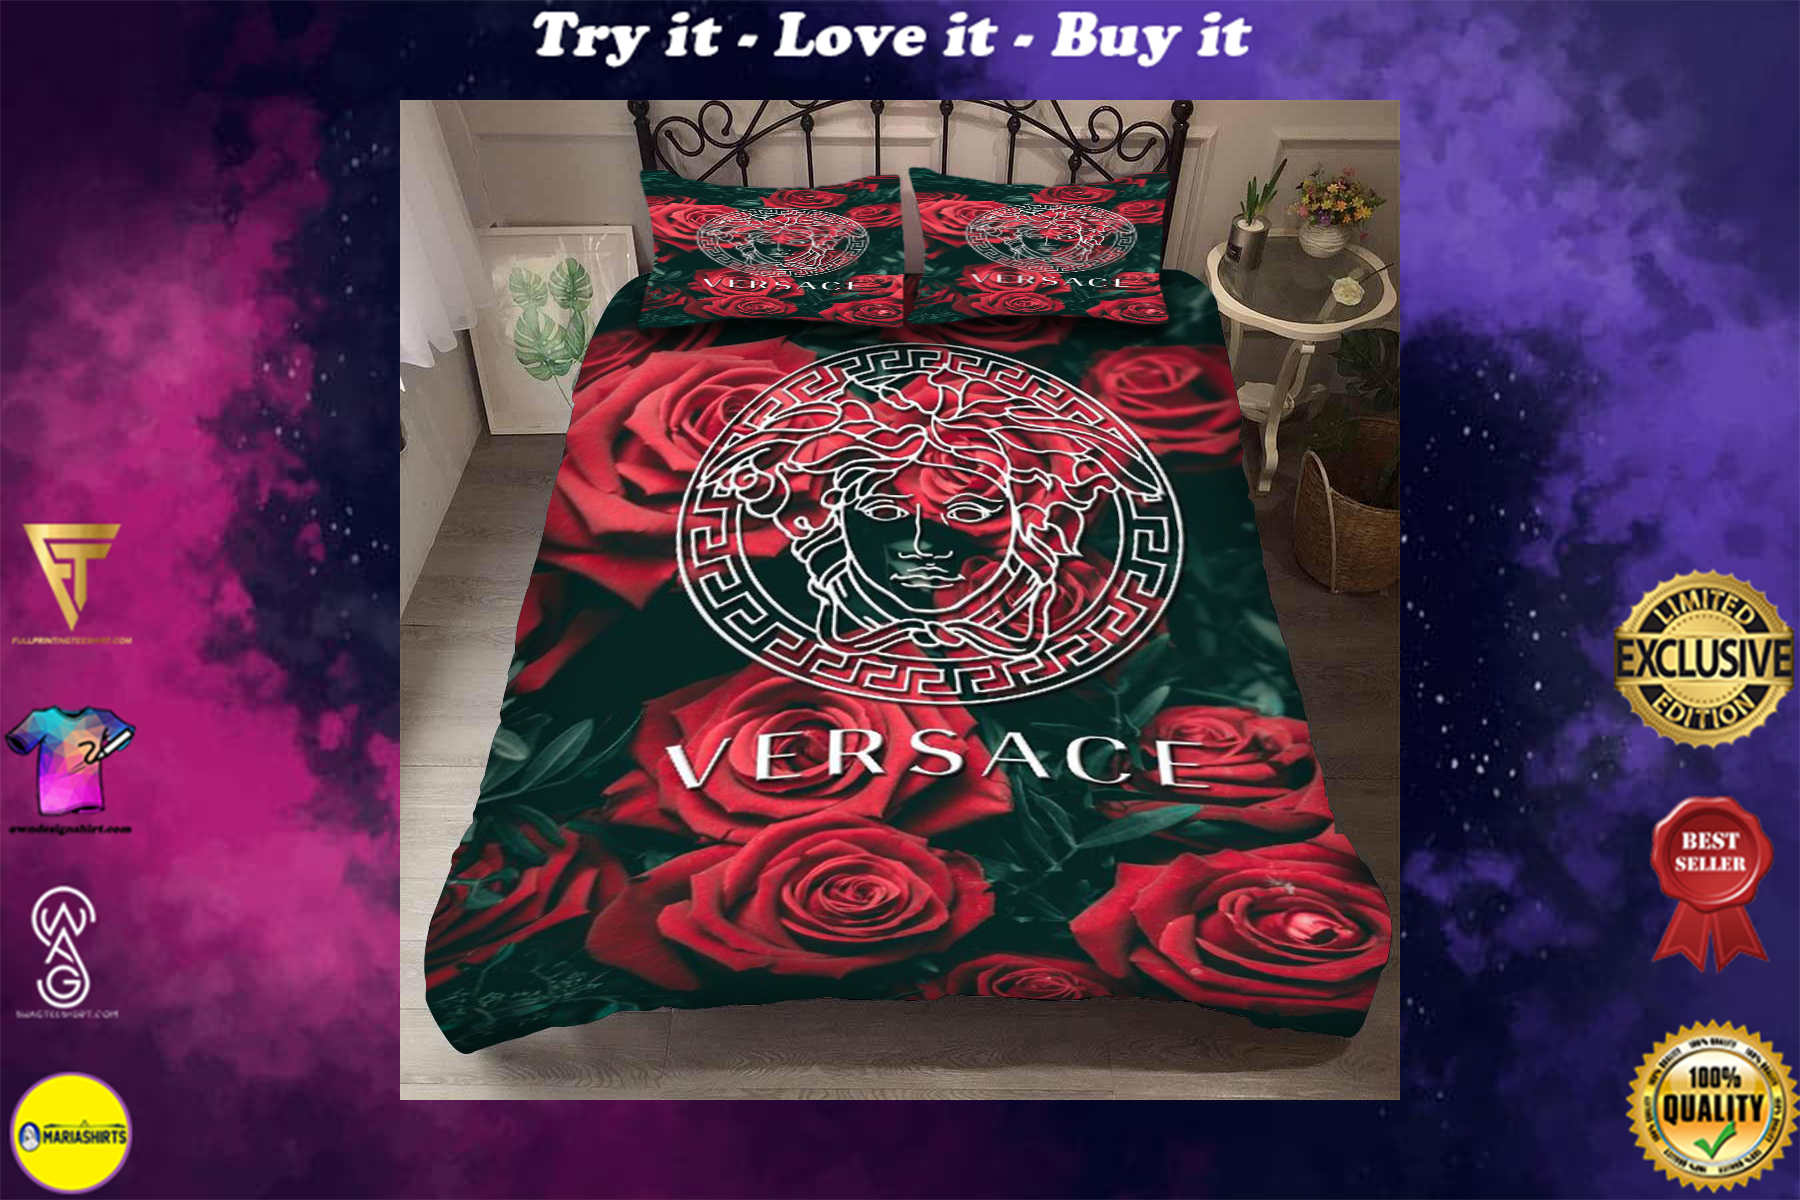 [special edition] versace symbols and roses bedding set - maria